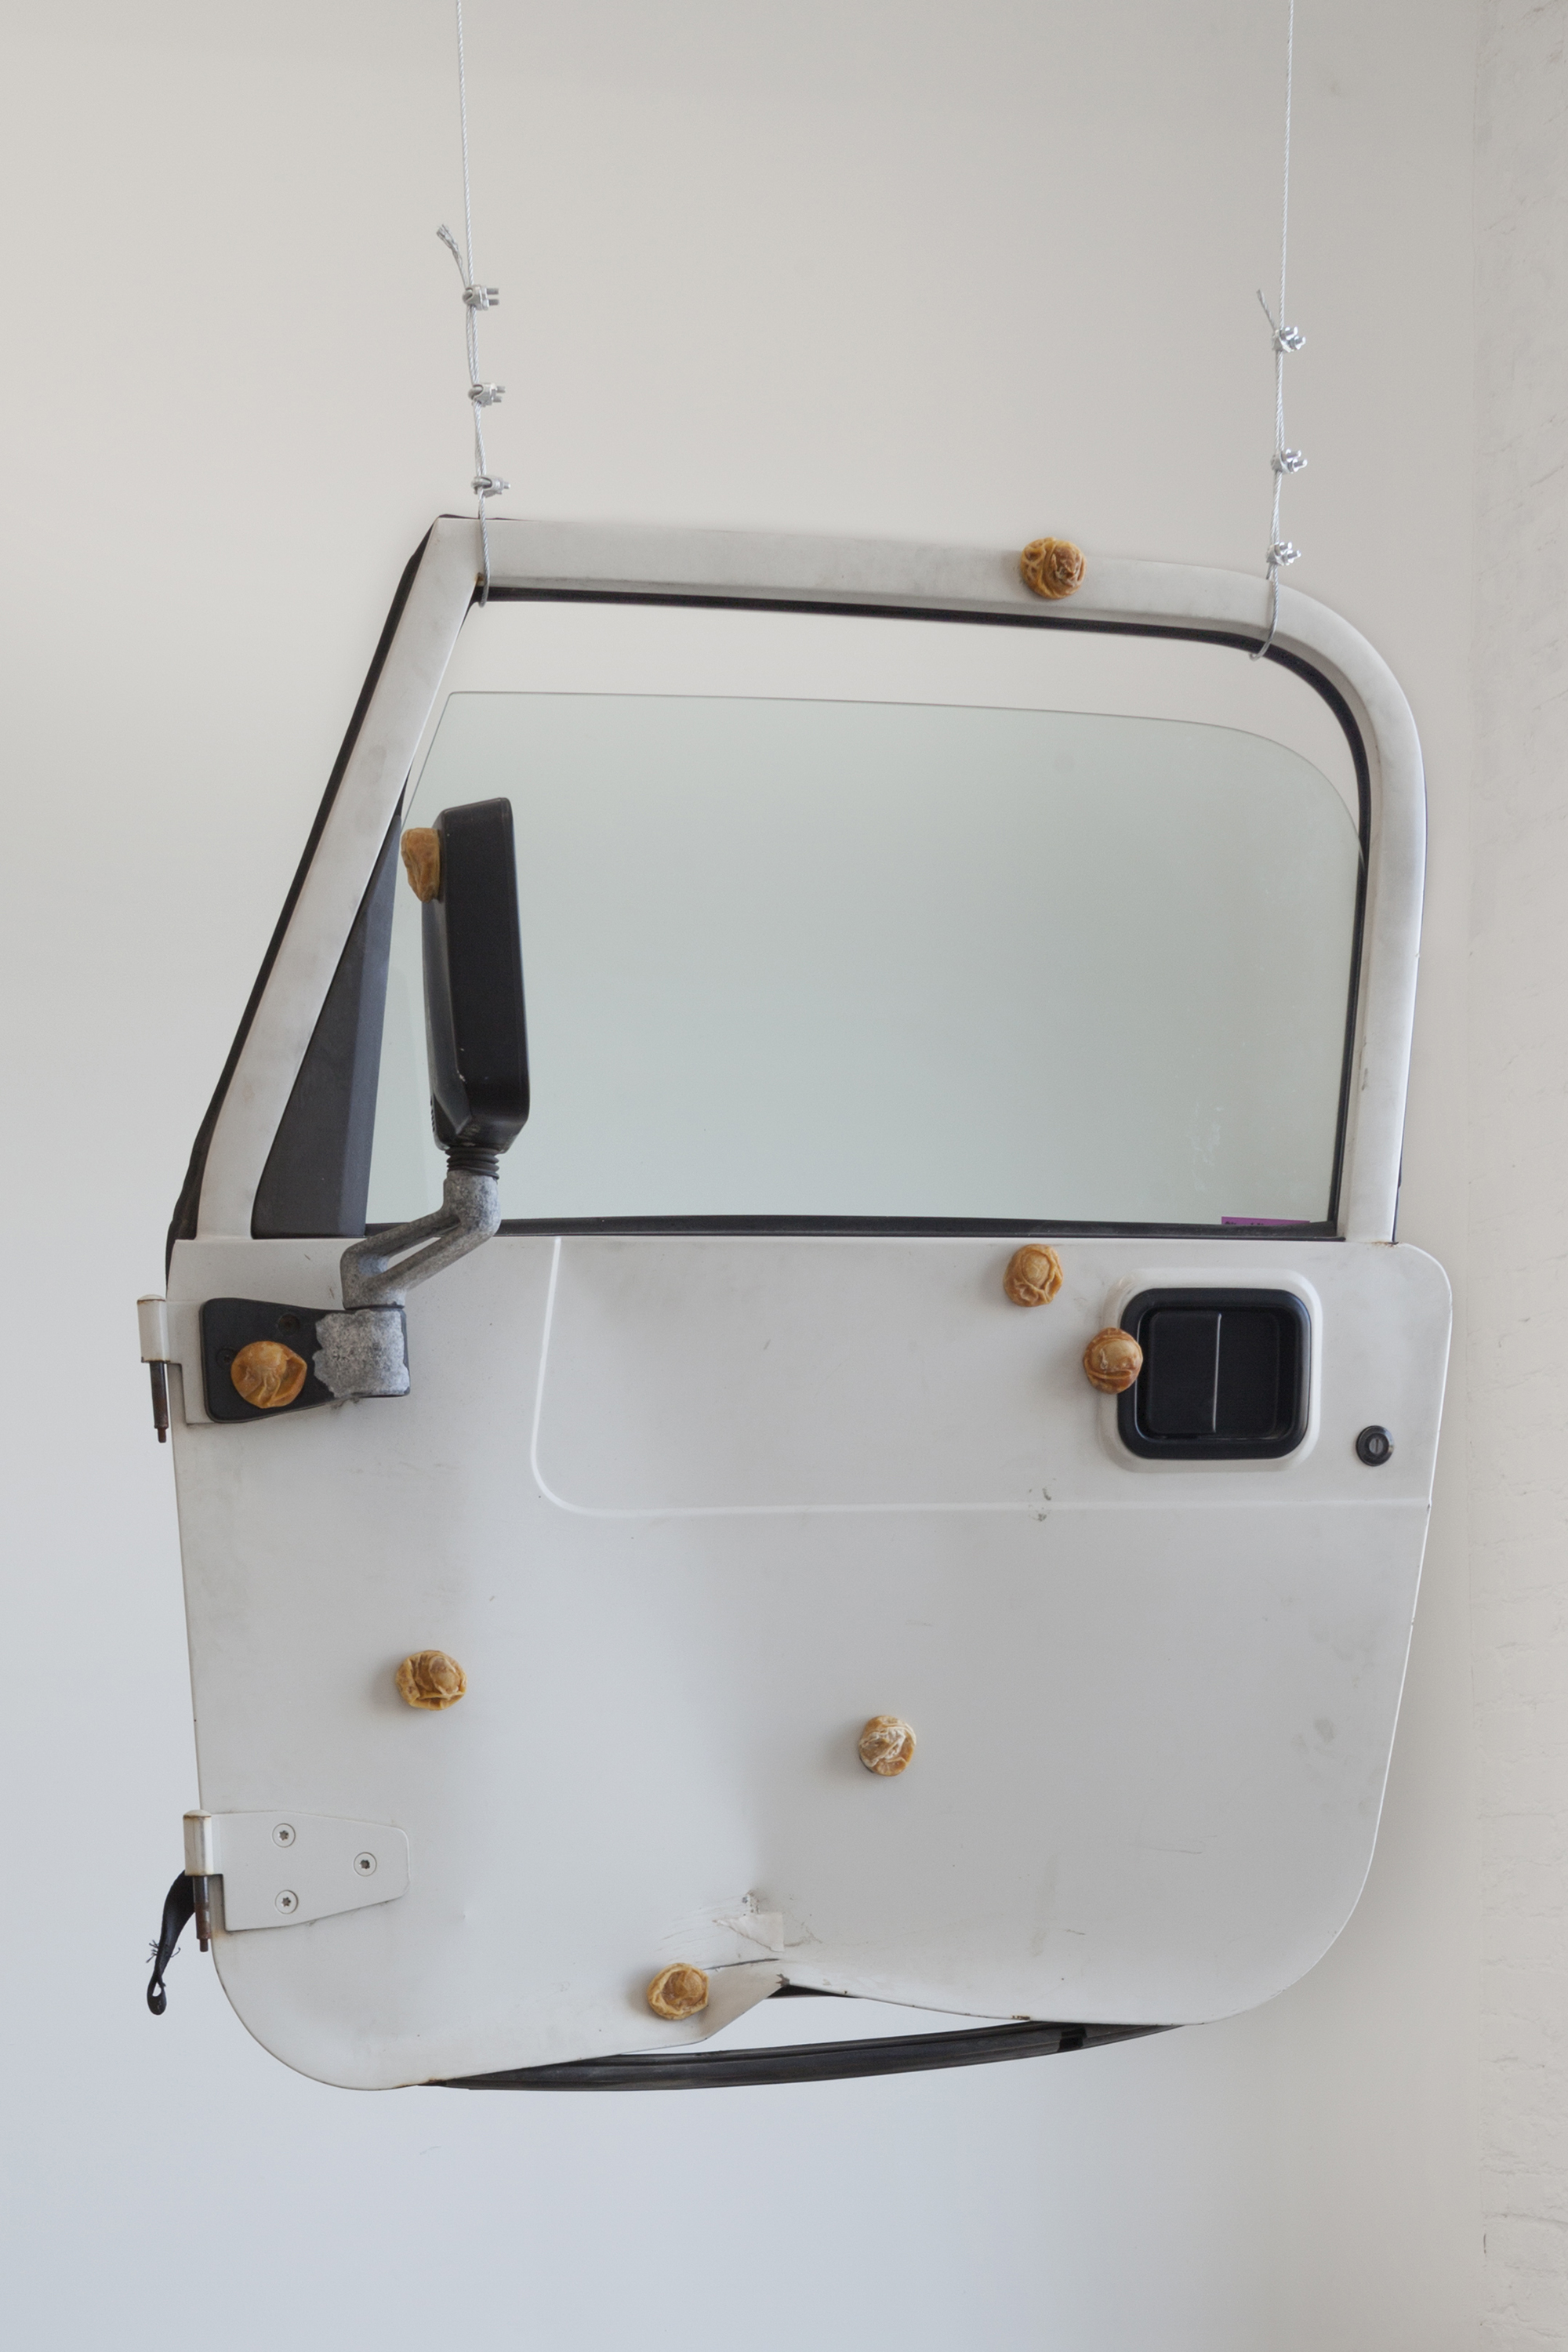 """Catalina Ouyang, """"when it dies its head will turn toward the hill where it was born,"""" 2018 car door, dehydrated raw eggs, epoxy clay, incense, cable 37h x 41w x 12d in"""